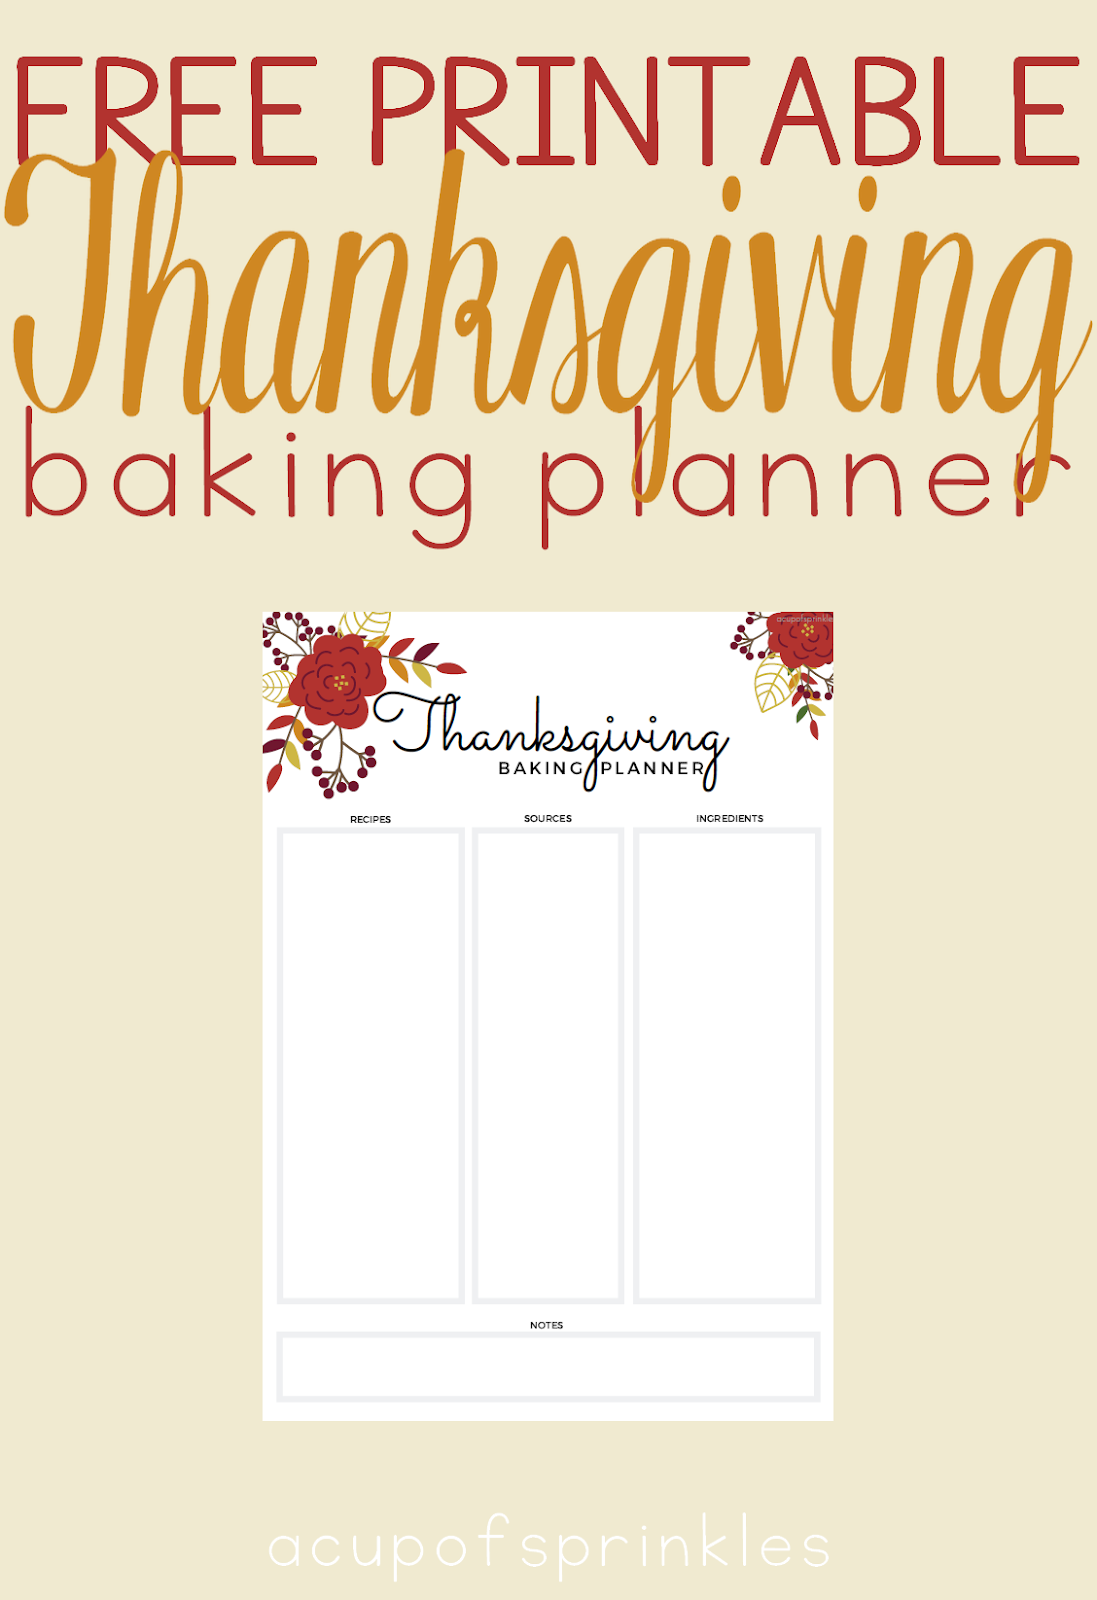 Free Printable Thanksgiving Baking Planner